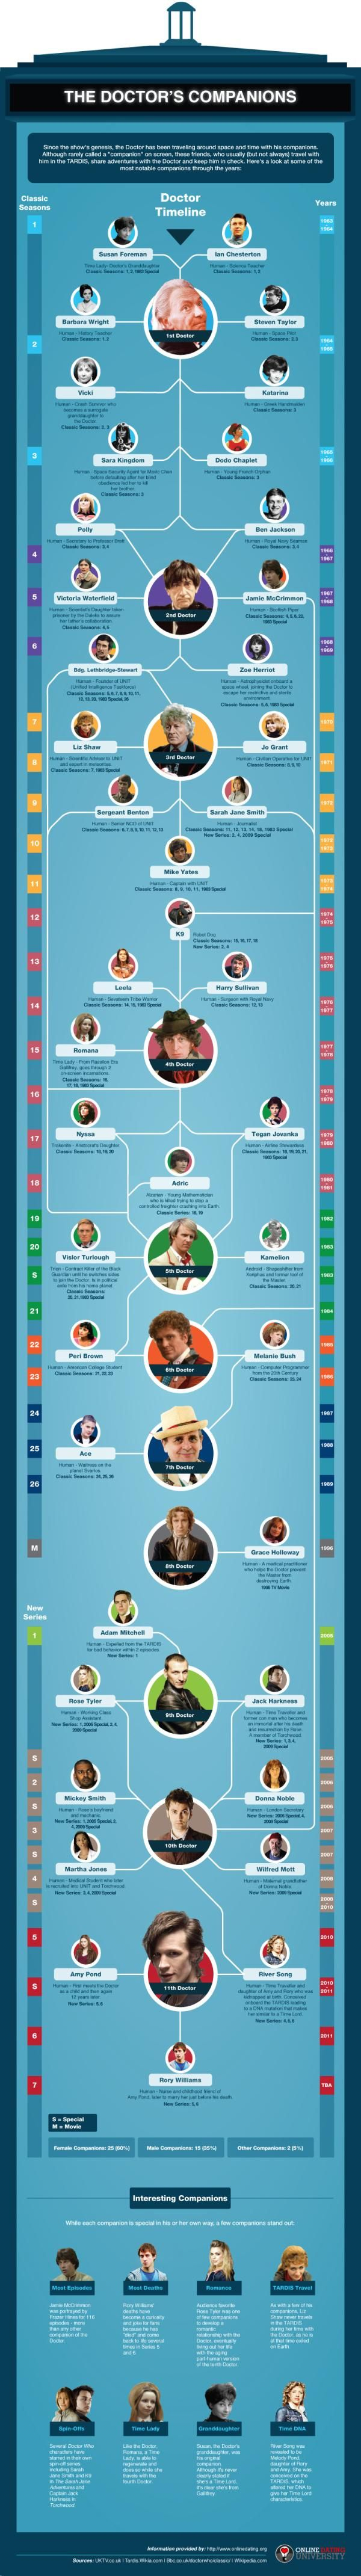 Infographic - The Doctor's companions